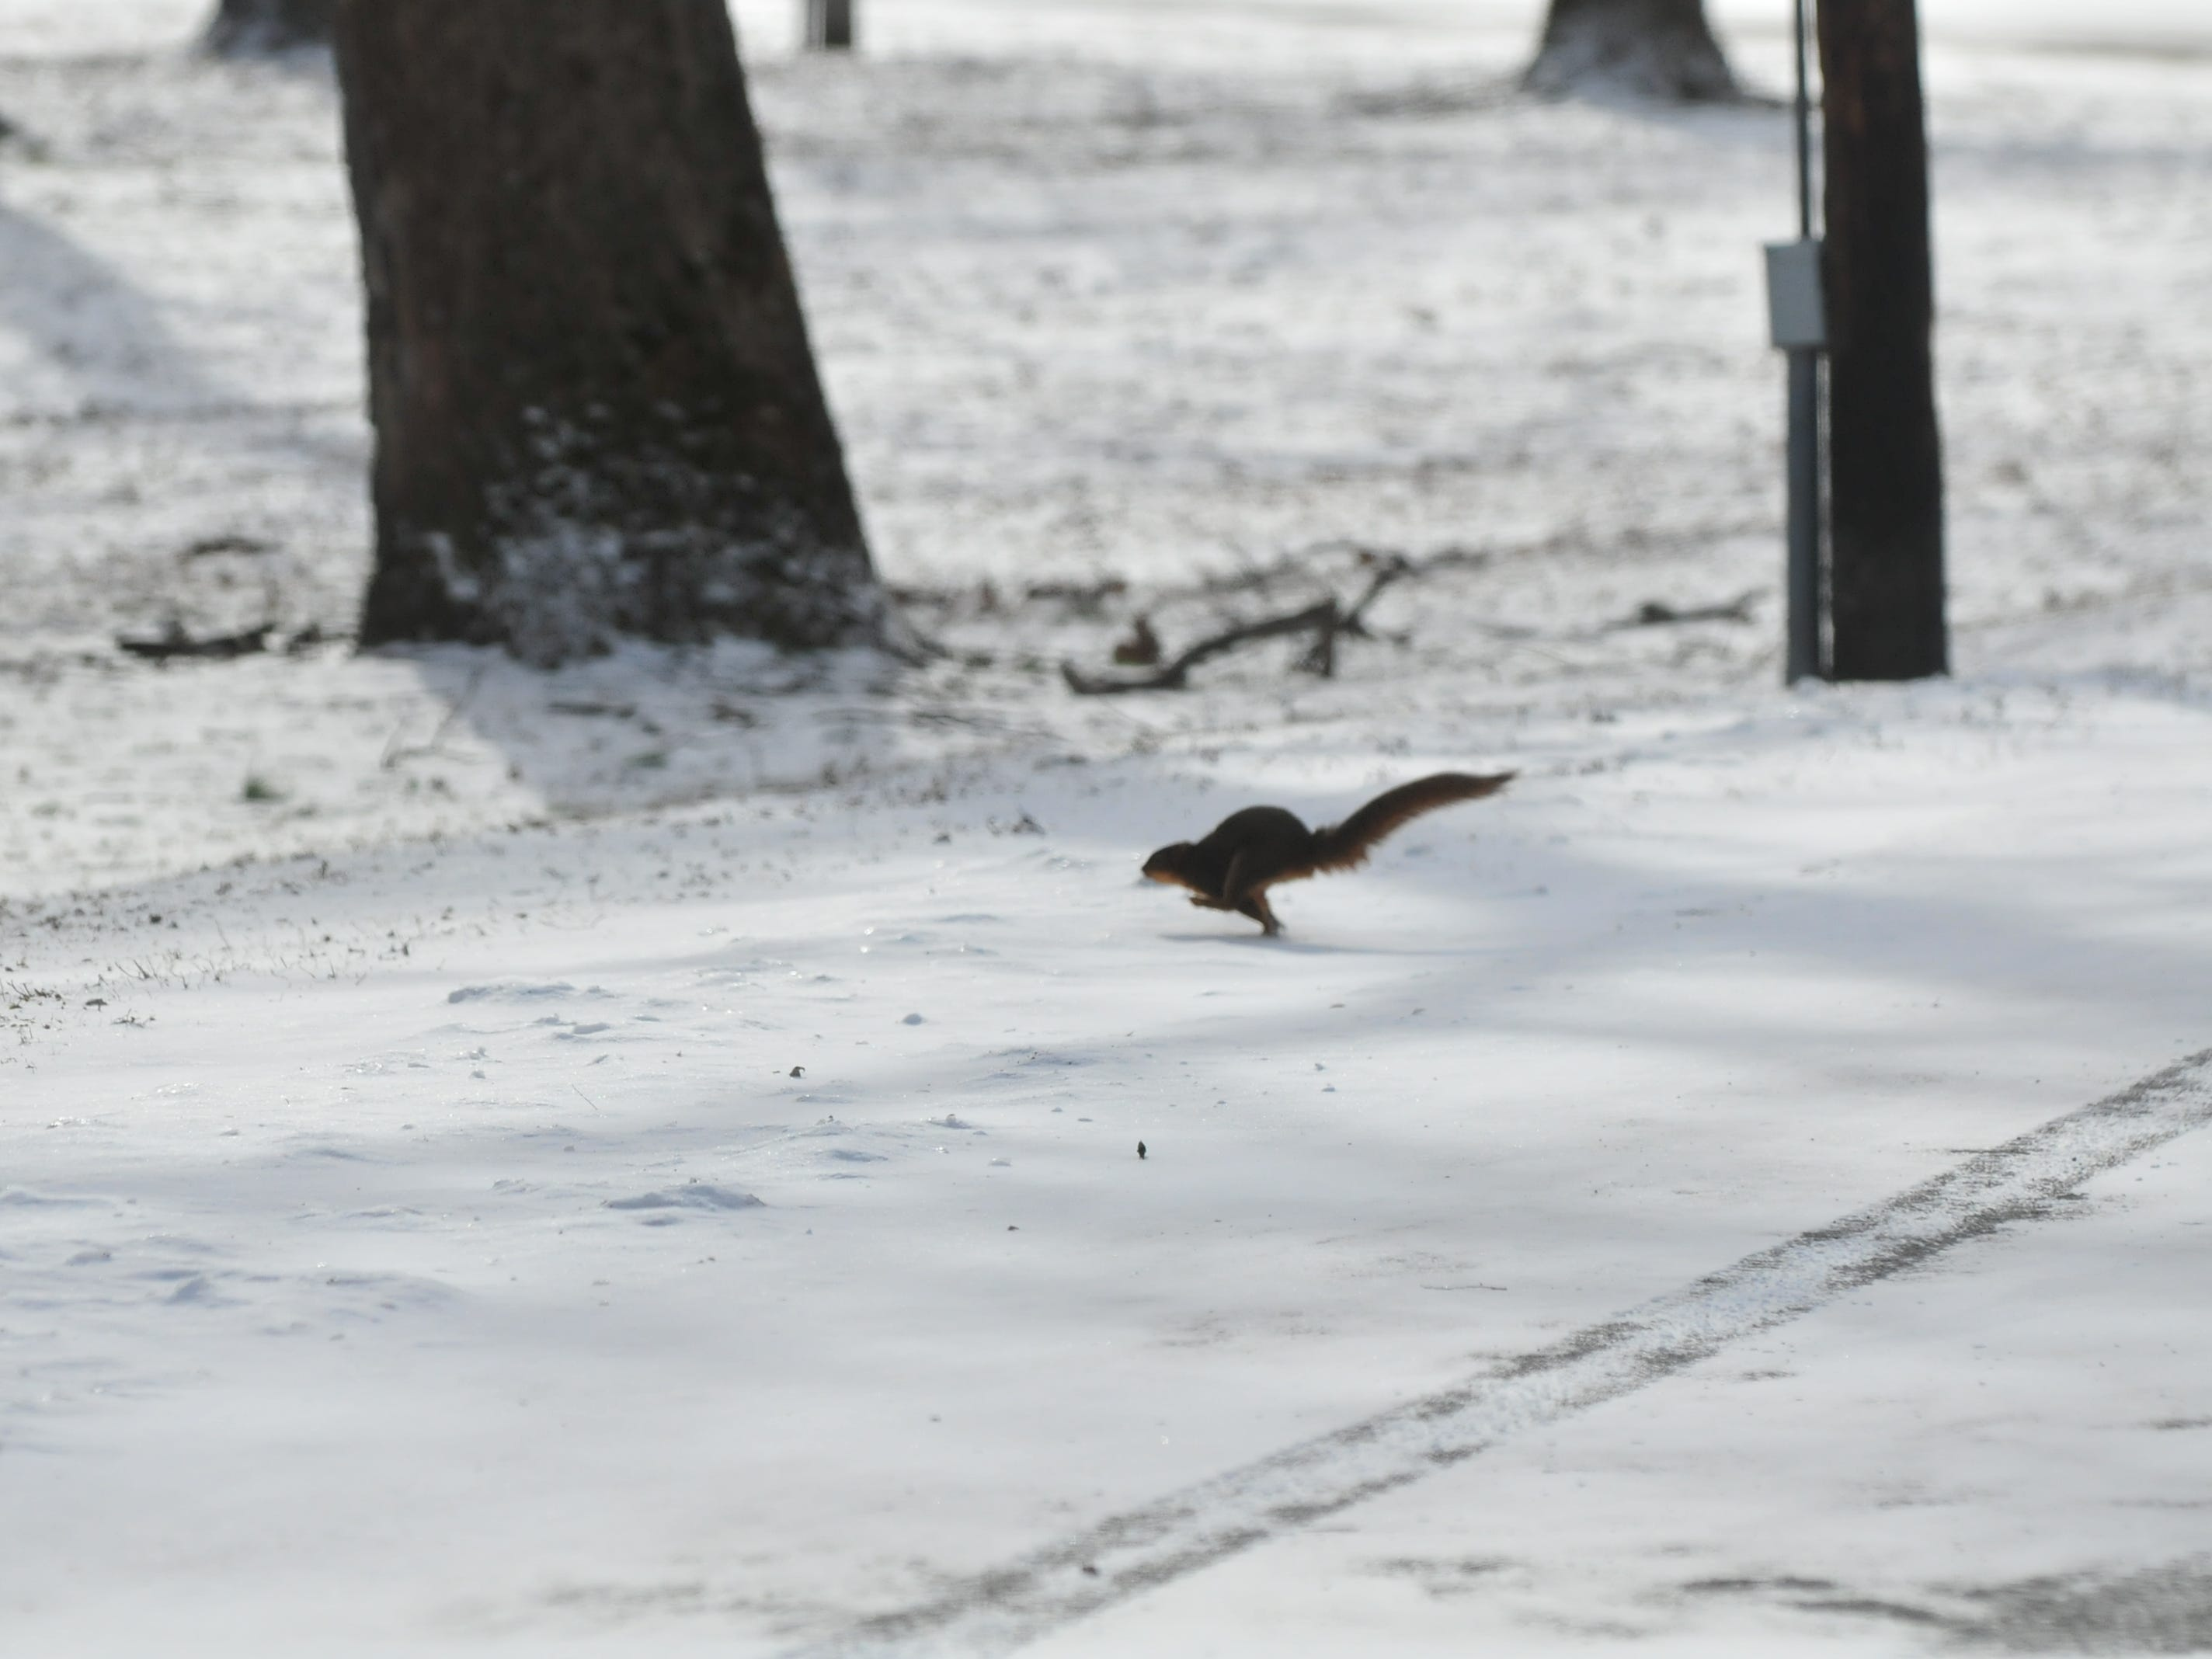 A squirrel runs toward trees at Springwood Park after raiding garbage cans Wednesday.